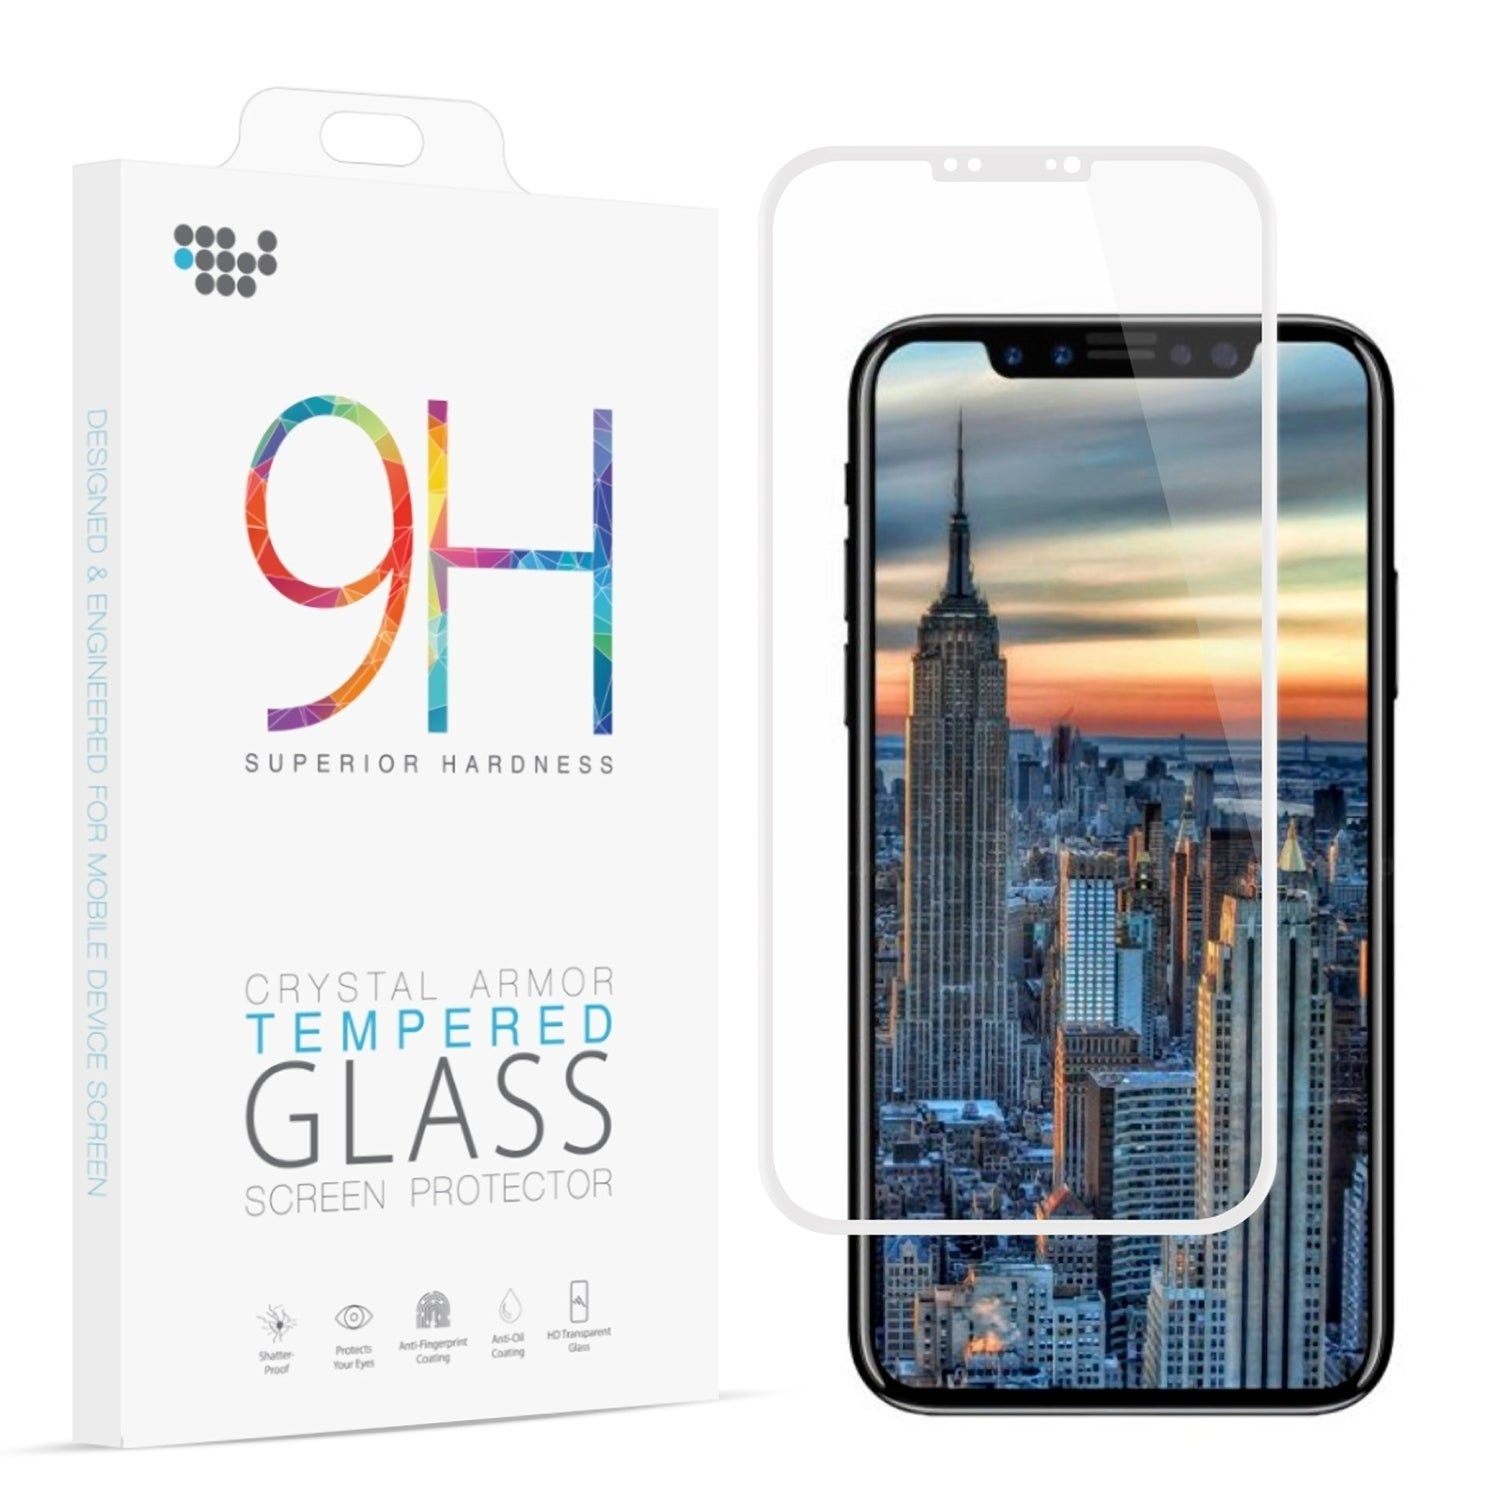 Shop Iphone 8 3d Full Coverage Tempered Glass Screen Protector Plus Clear Cover Premium Pro Arcing Free Shipping On Orders Over 45 17487167